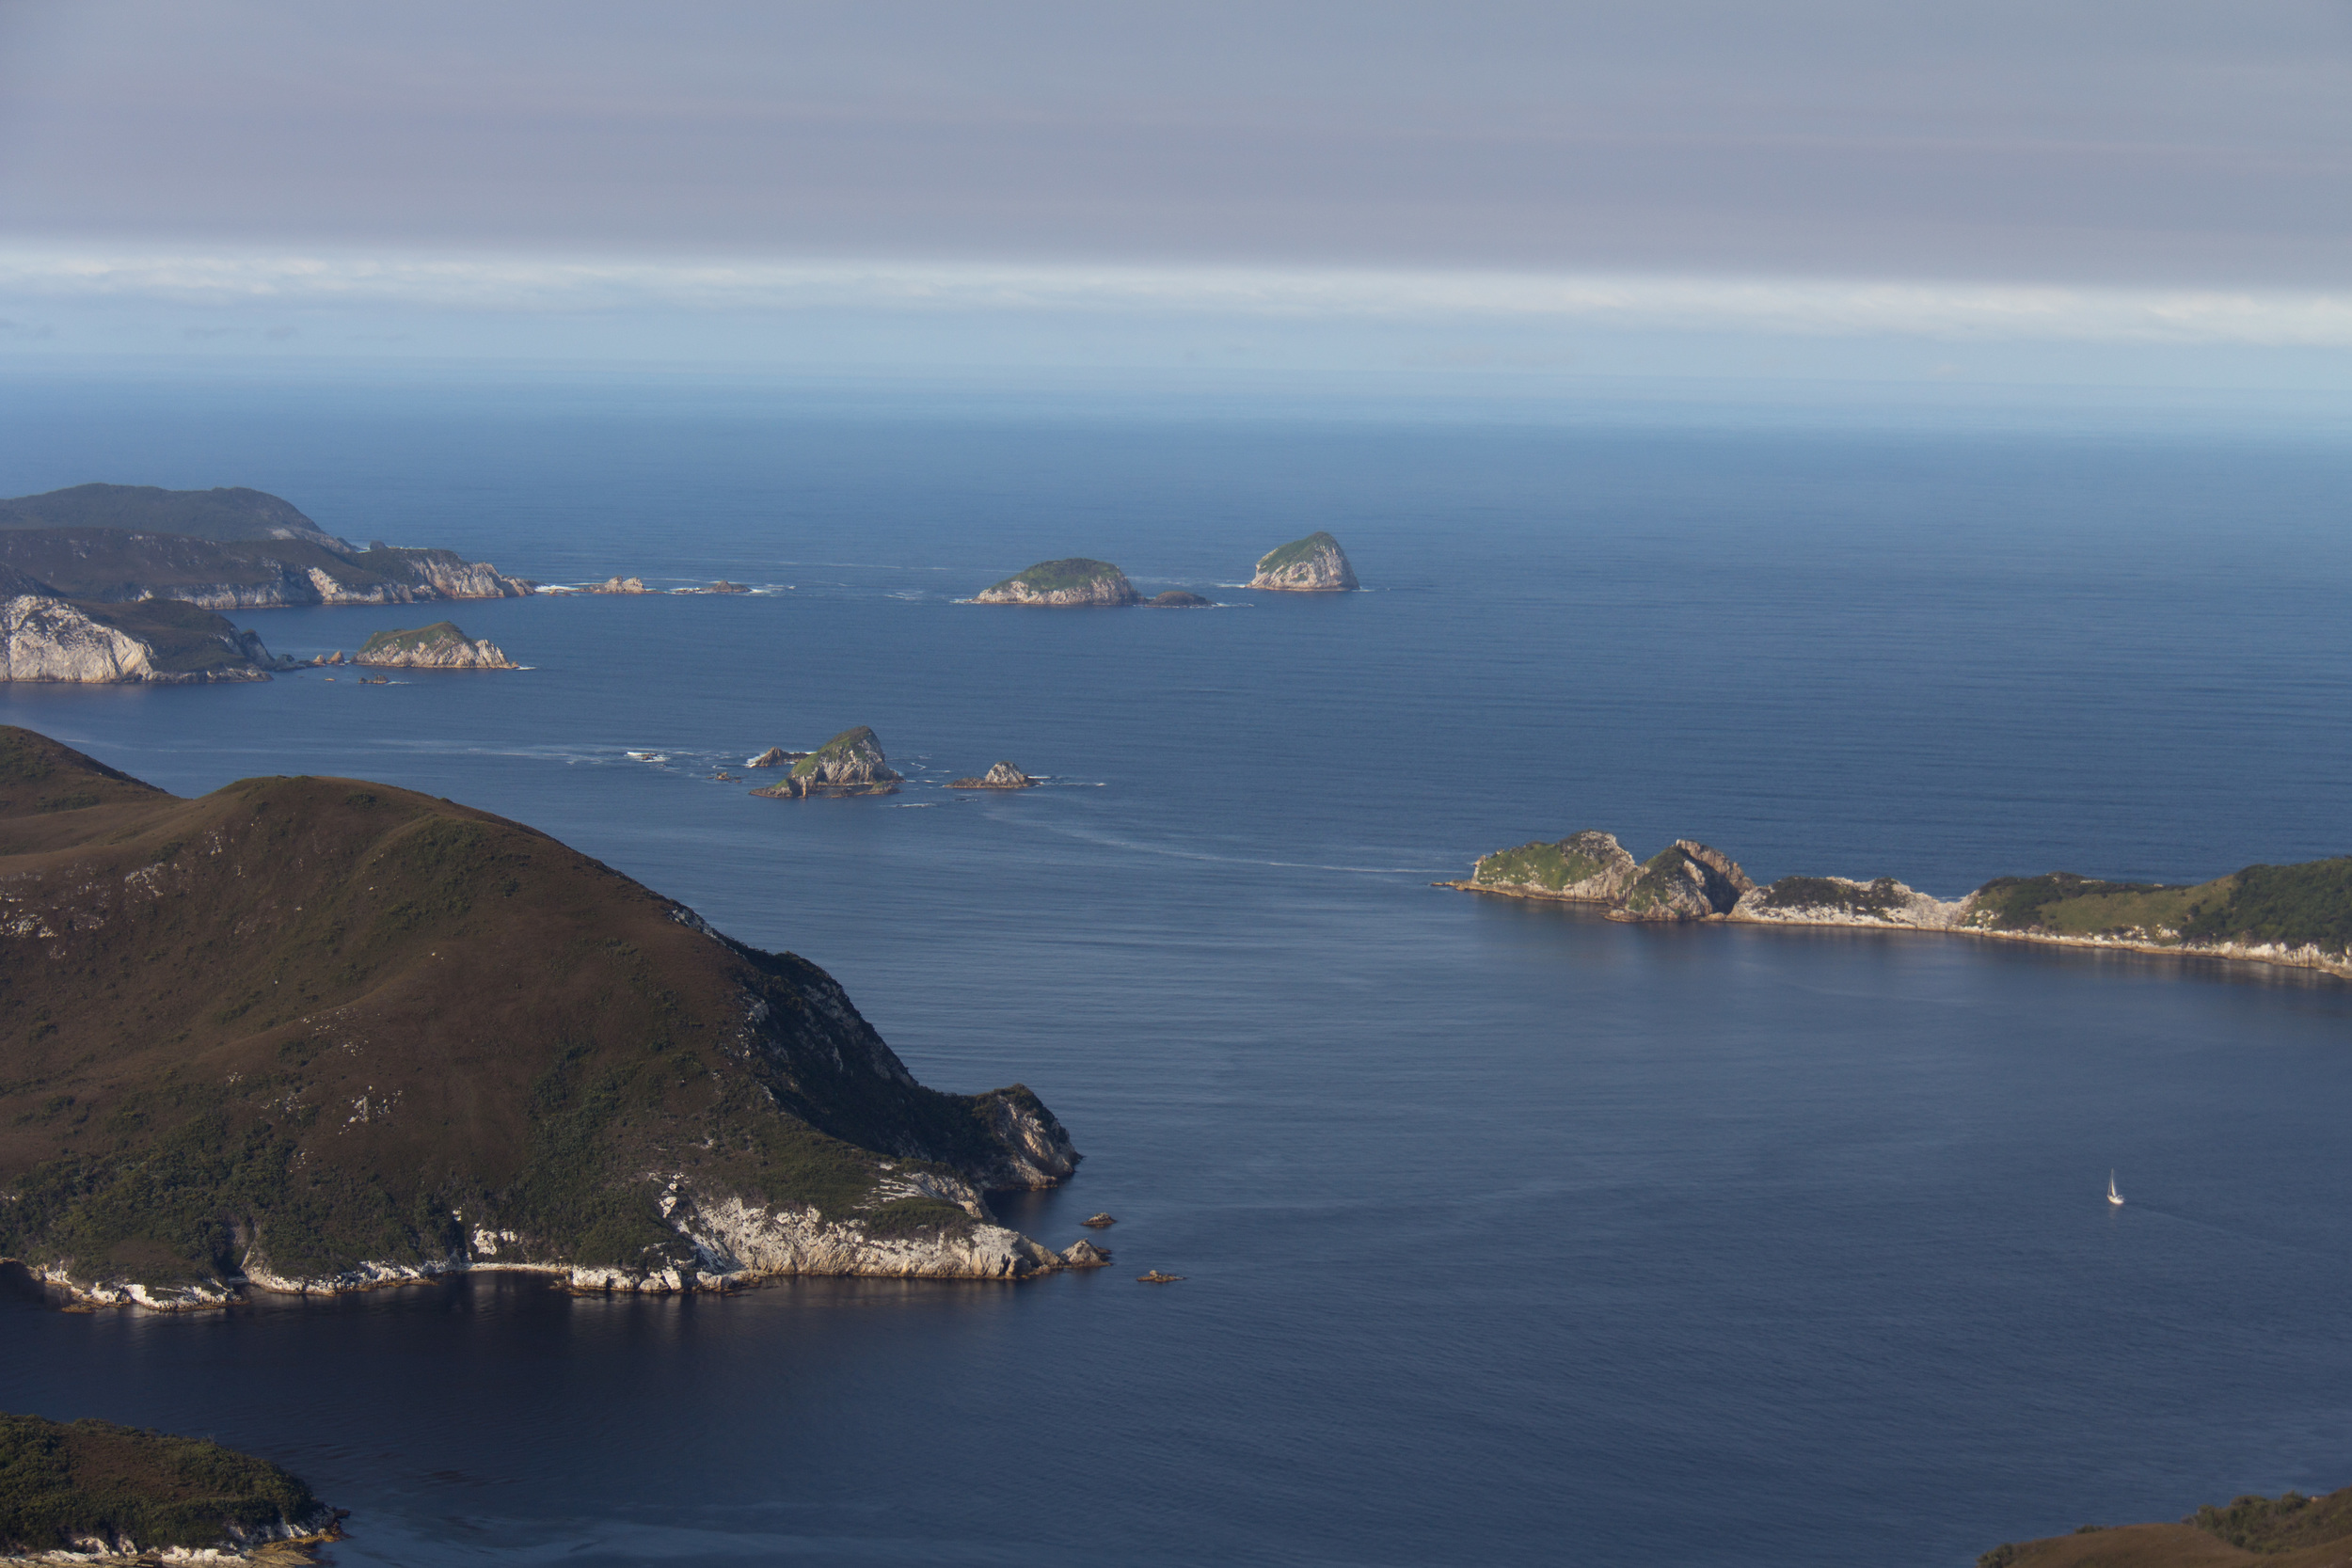 The Kamiros sailing towards the South Passage of the Bathurst Channel around the Breaksea Islands.